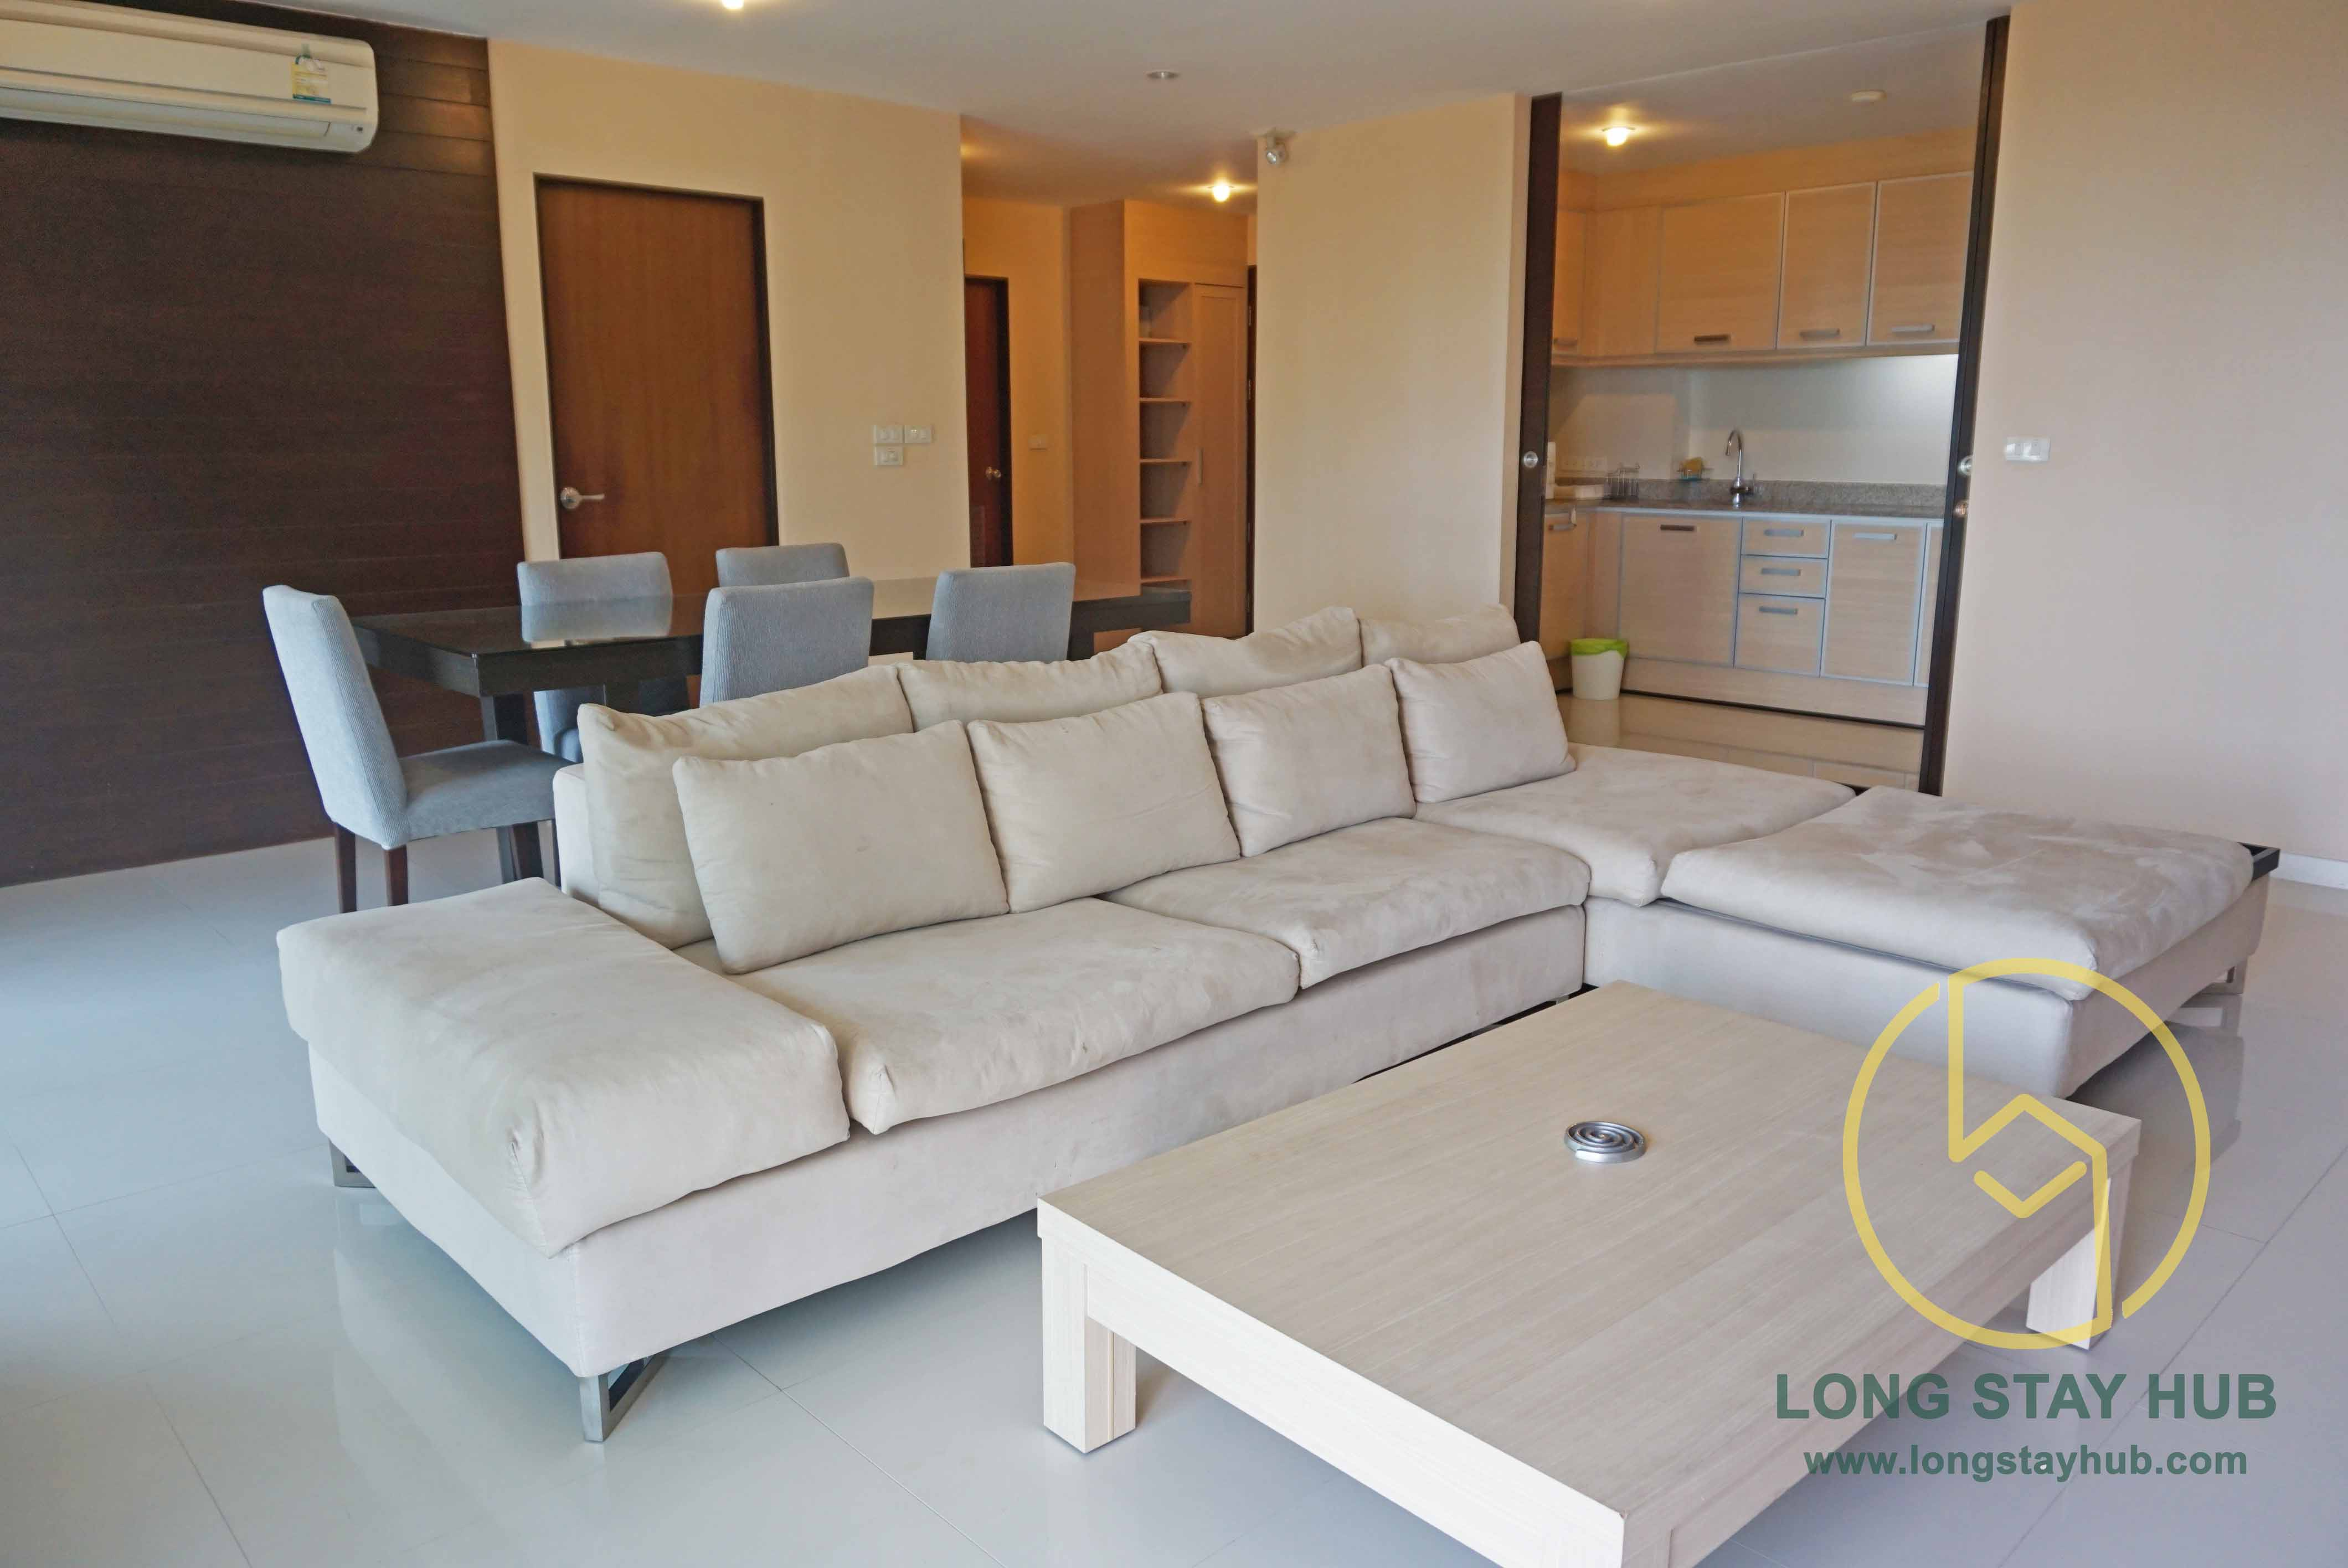 A 153 square-meter two-bedrooms corner unit with Jacuzzi at Peak Garden, near Shangri-la hotel